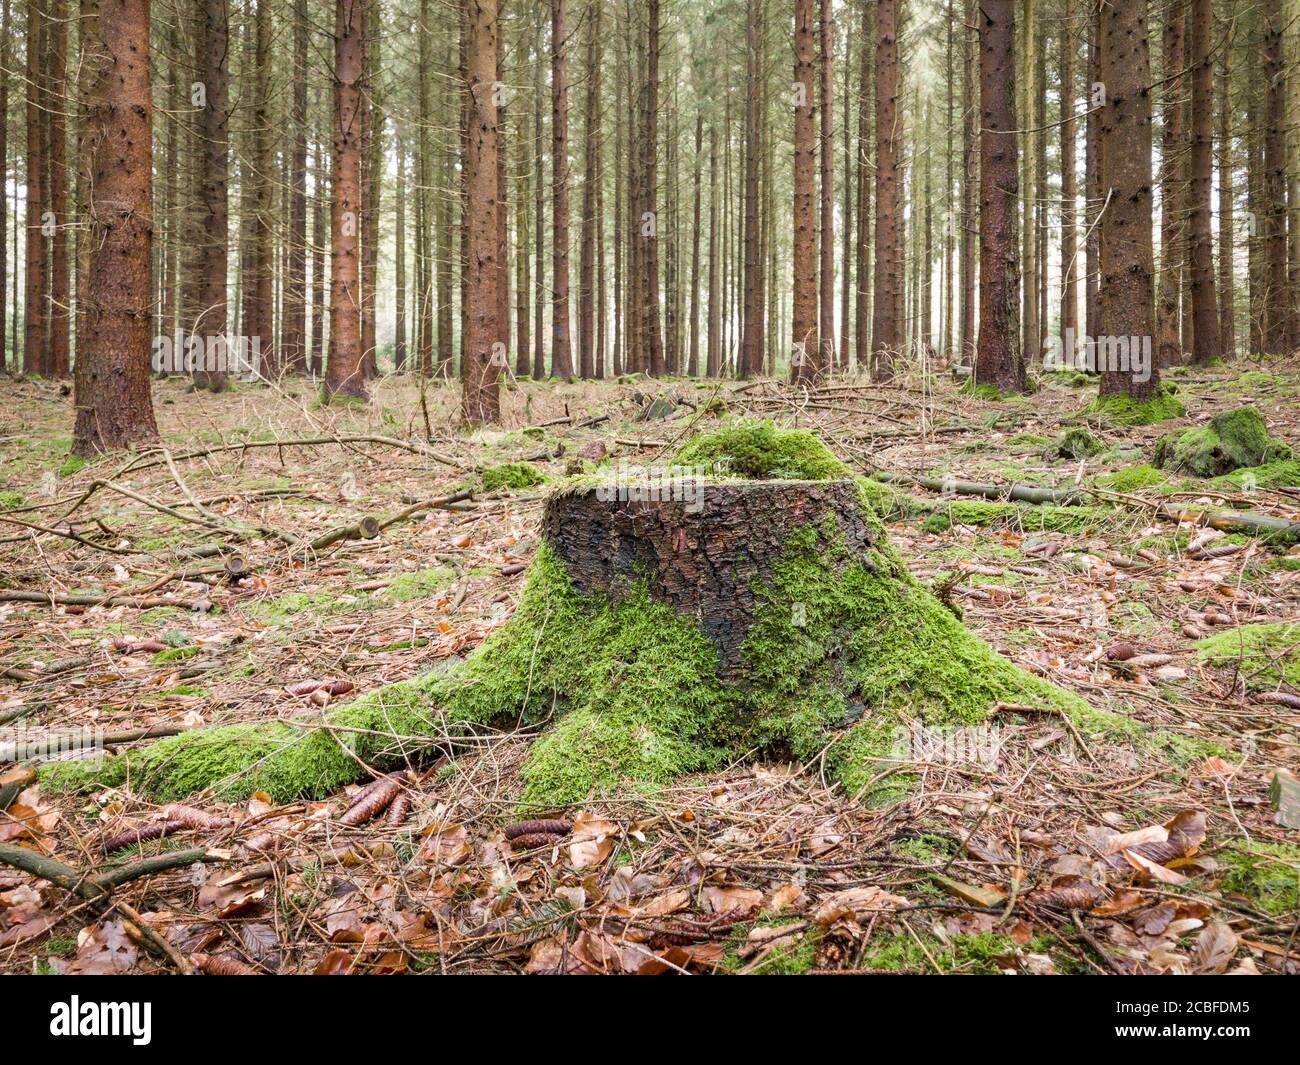 Tree stump with moss in a forest during autumn in the rural countryside in Westerwald, Rhineland-Palatinate, Germany Stock Photo